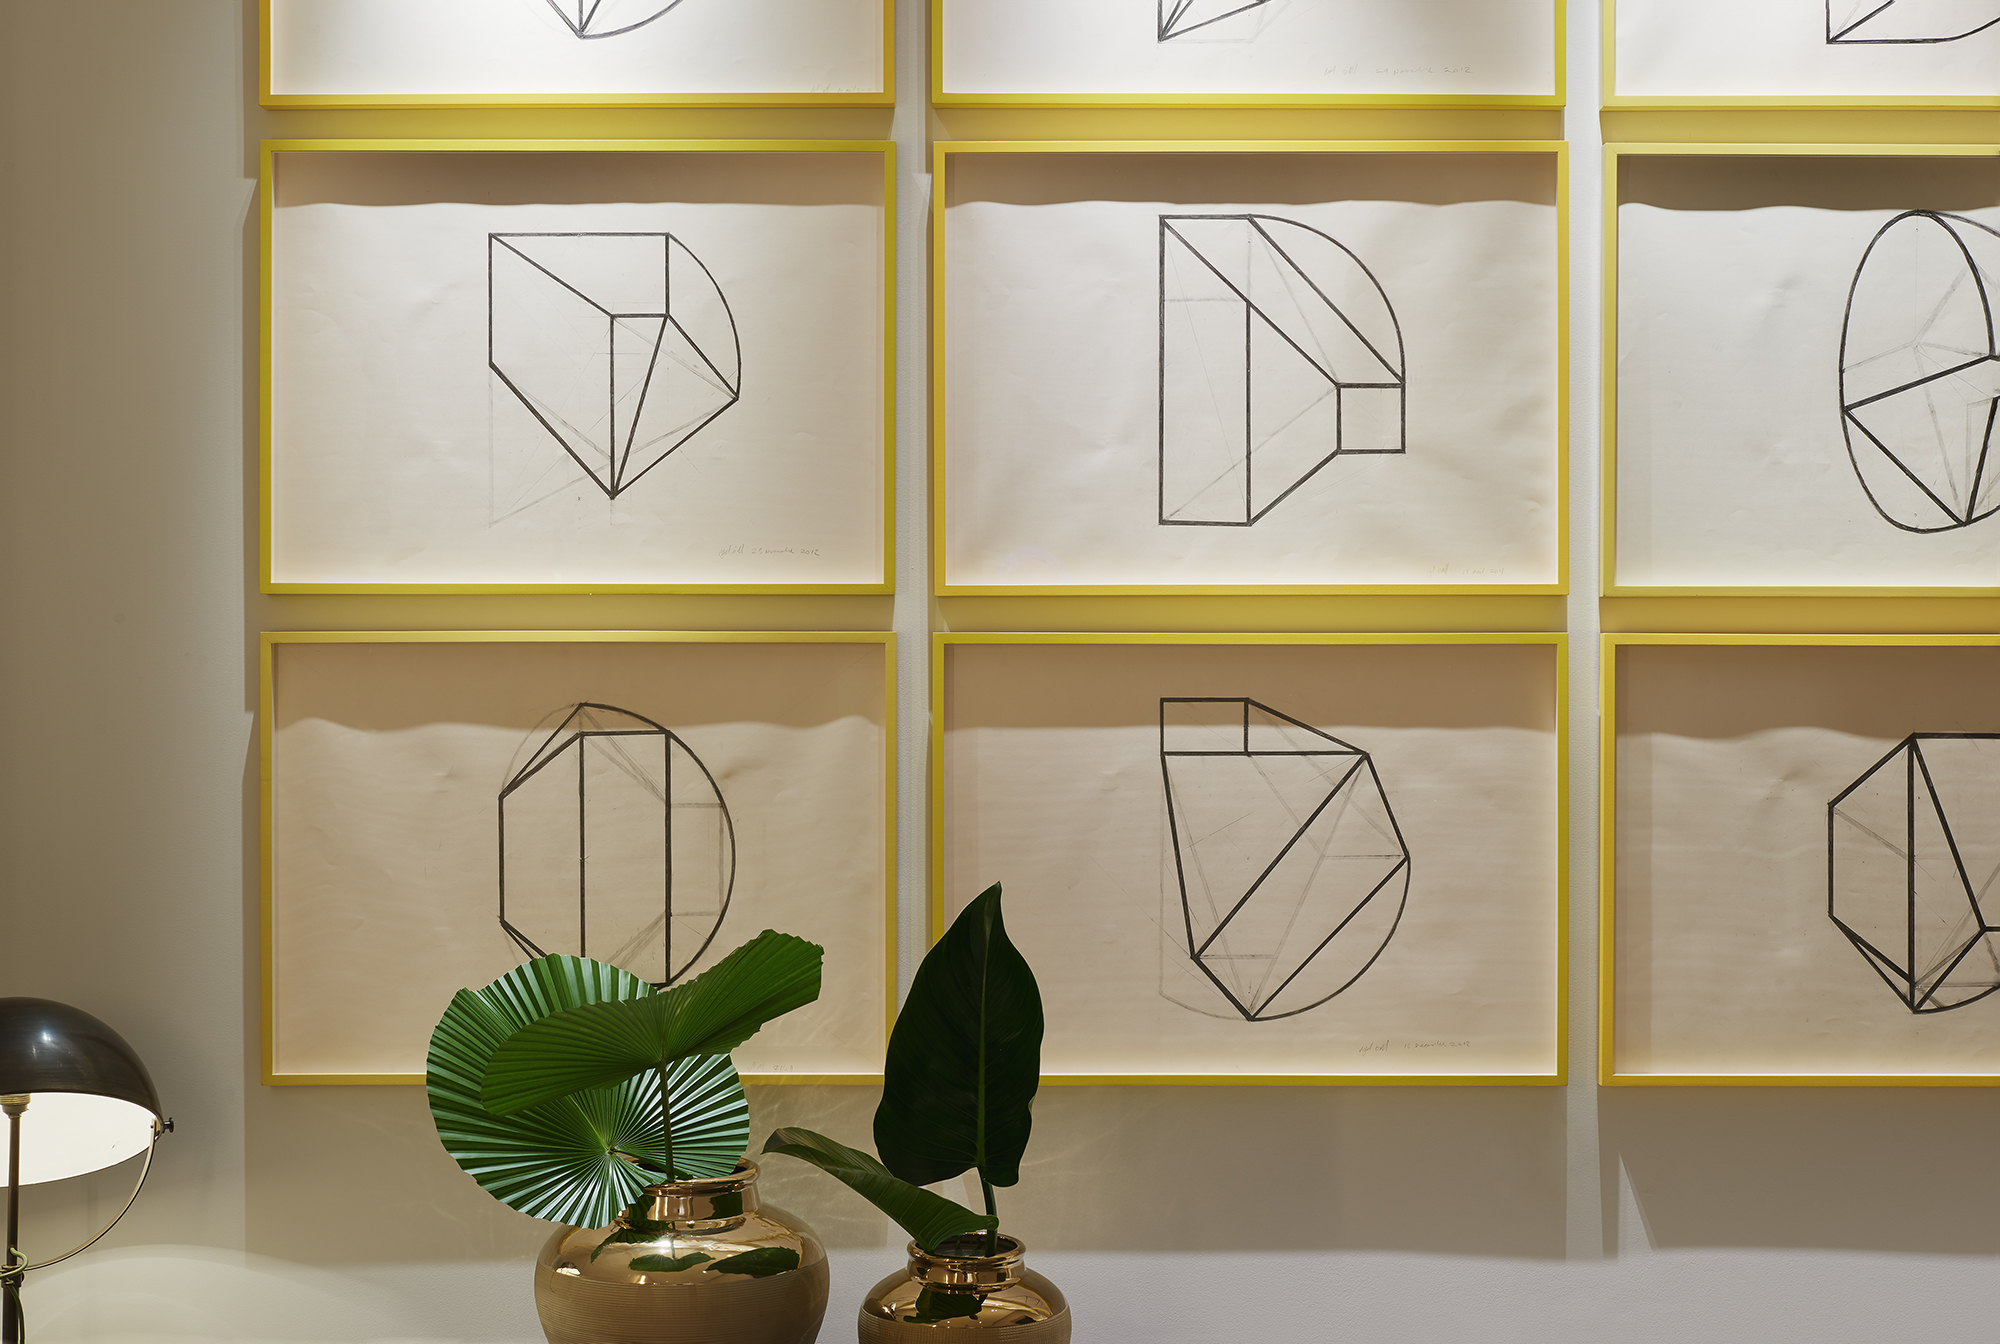 As well as sourcing art pieces, Studio Mackereth curated all aspects of the interiors - the soft ambient lighting, the fresh flowers -  even the books on the shelves in the libraries.